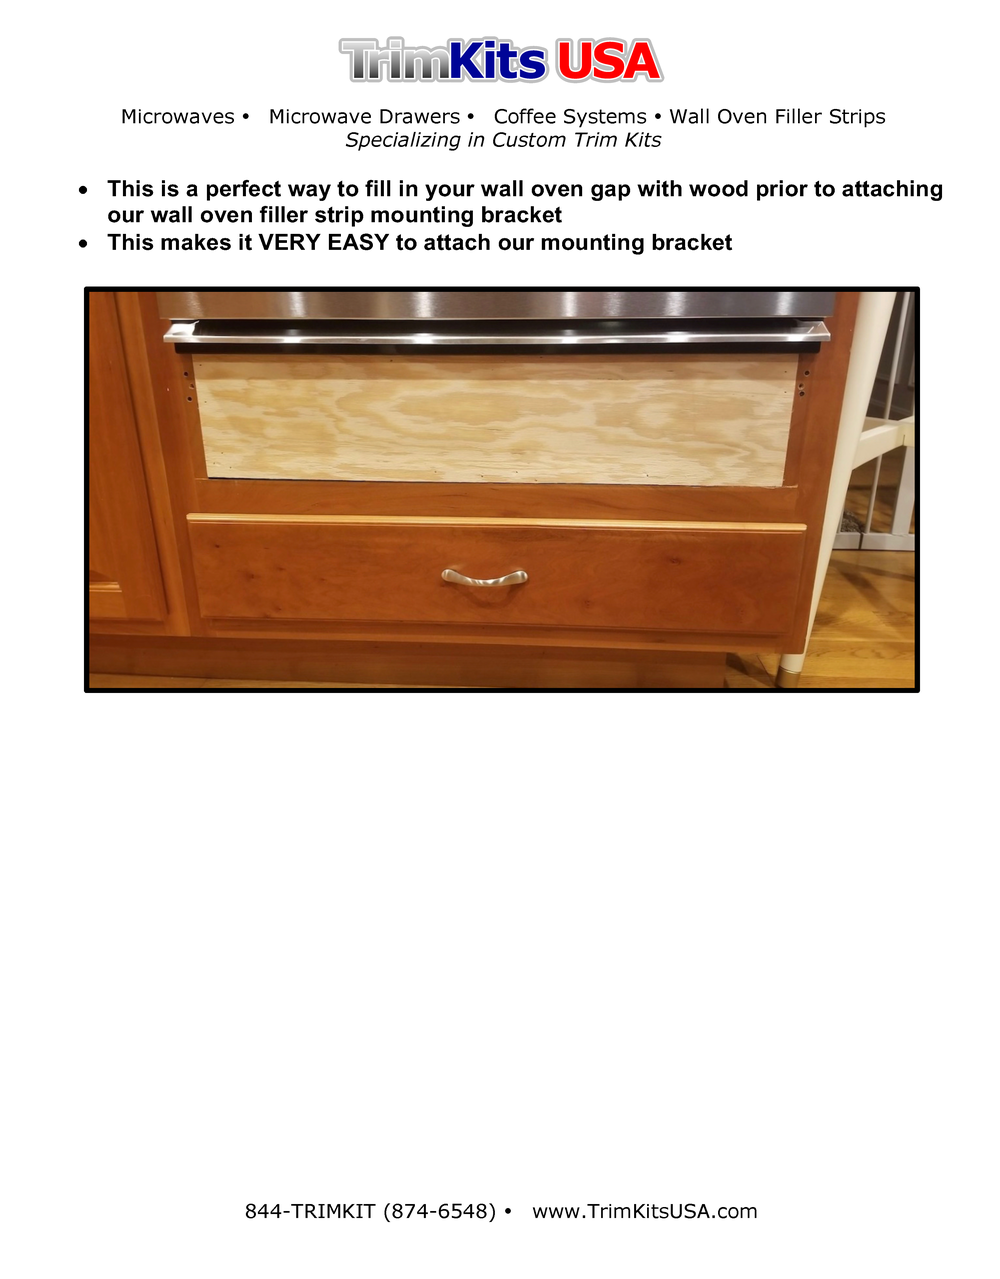 How to prepare for a wall oven filler strip.png